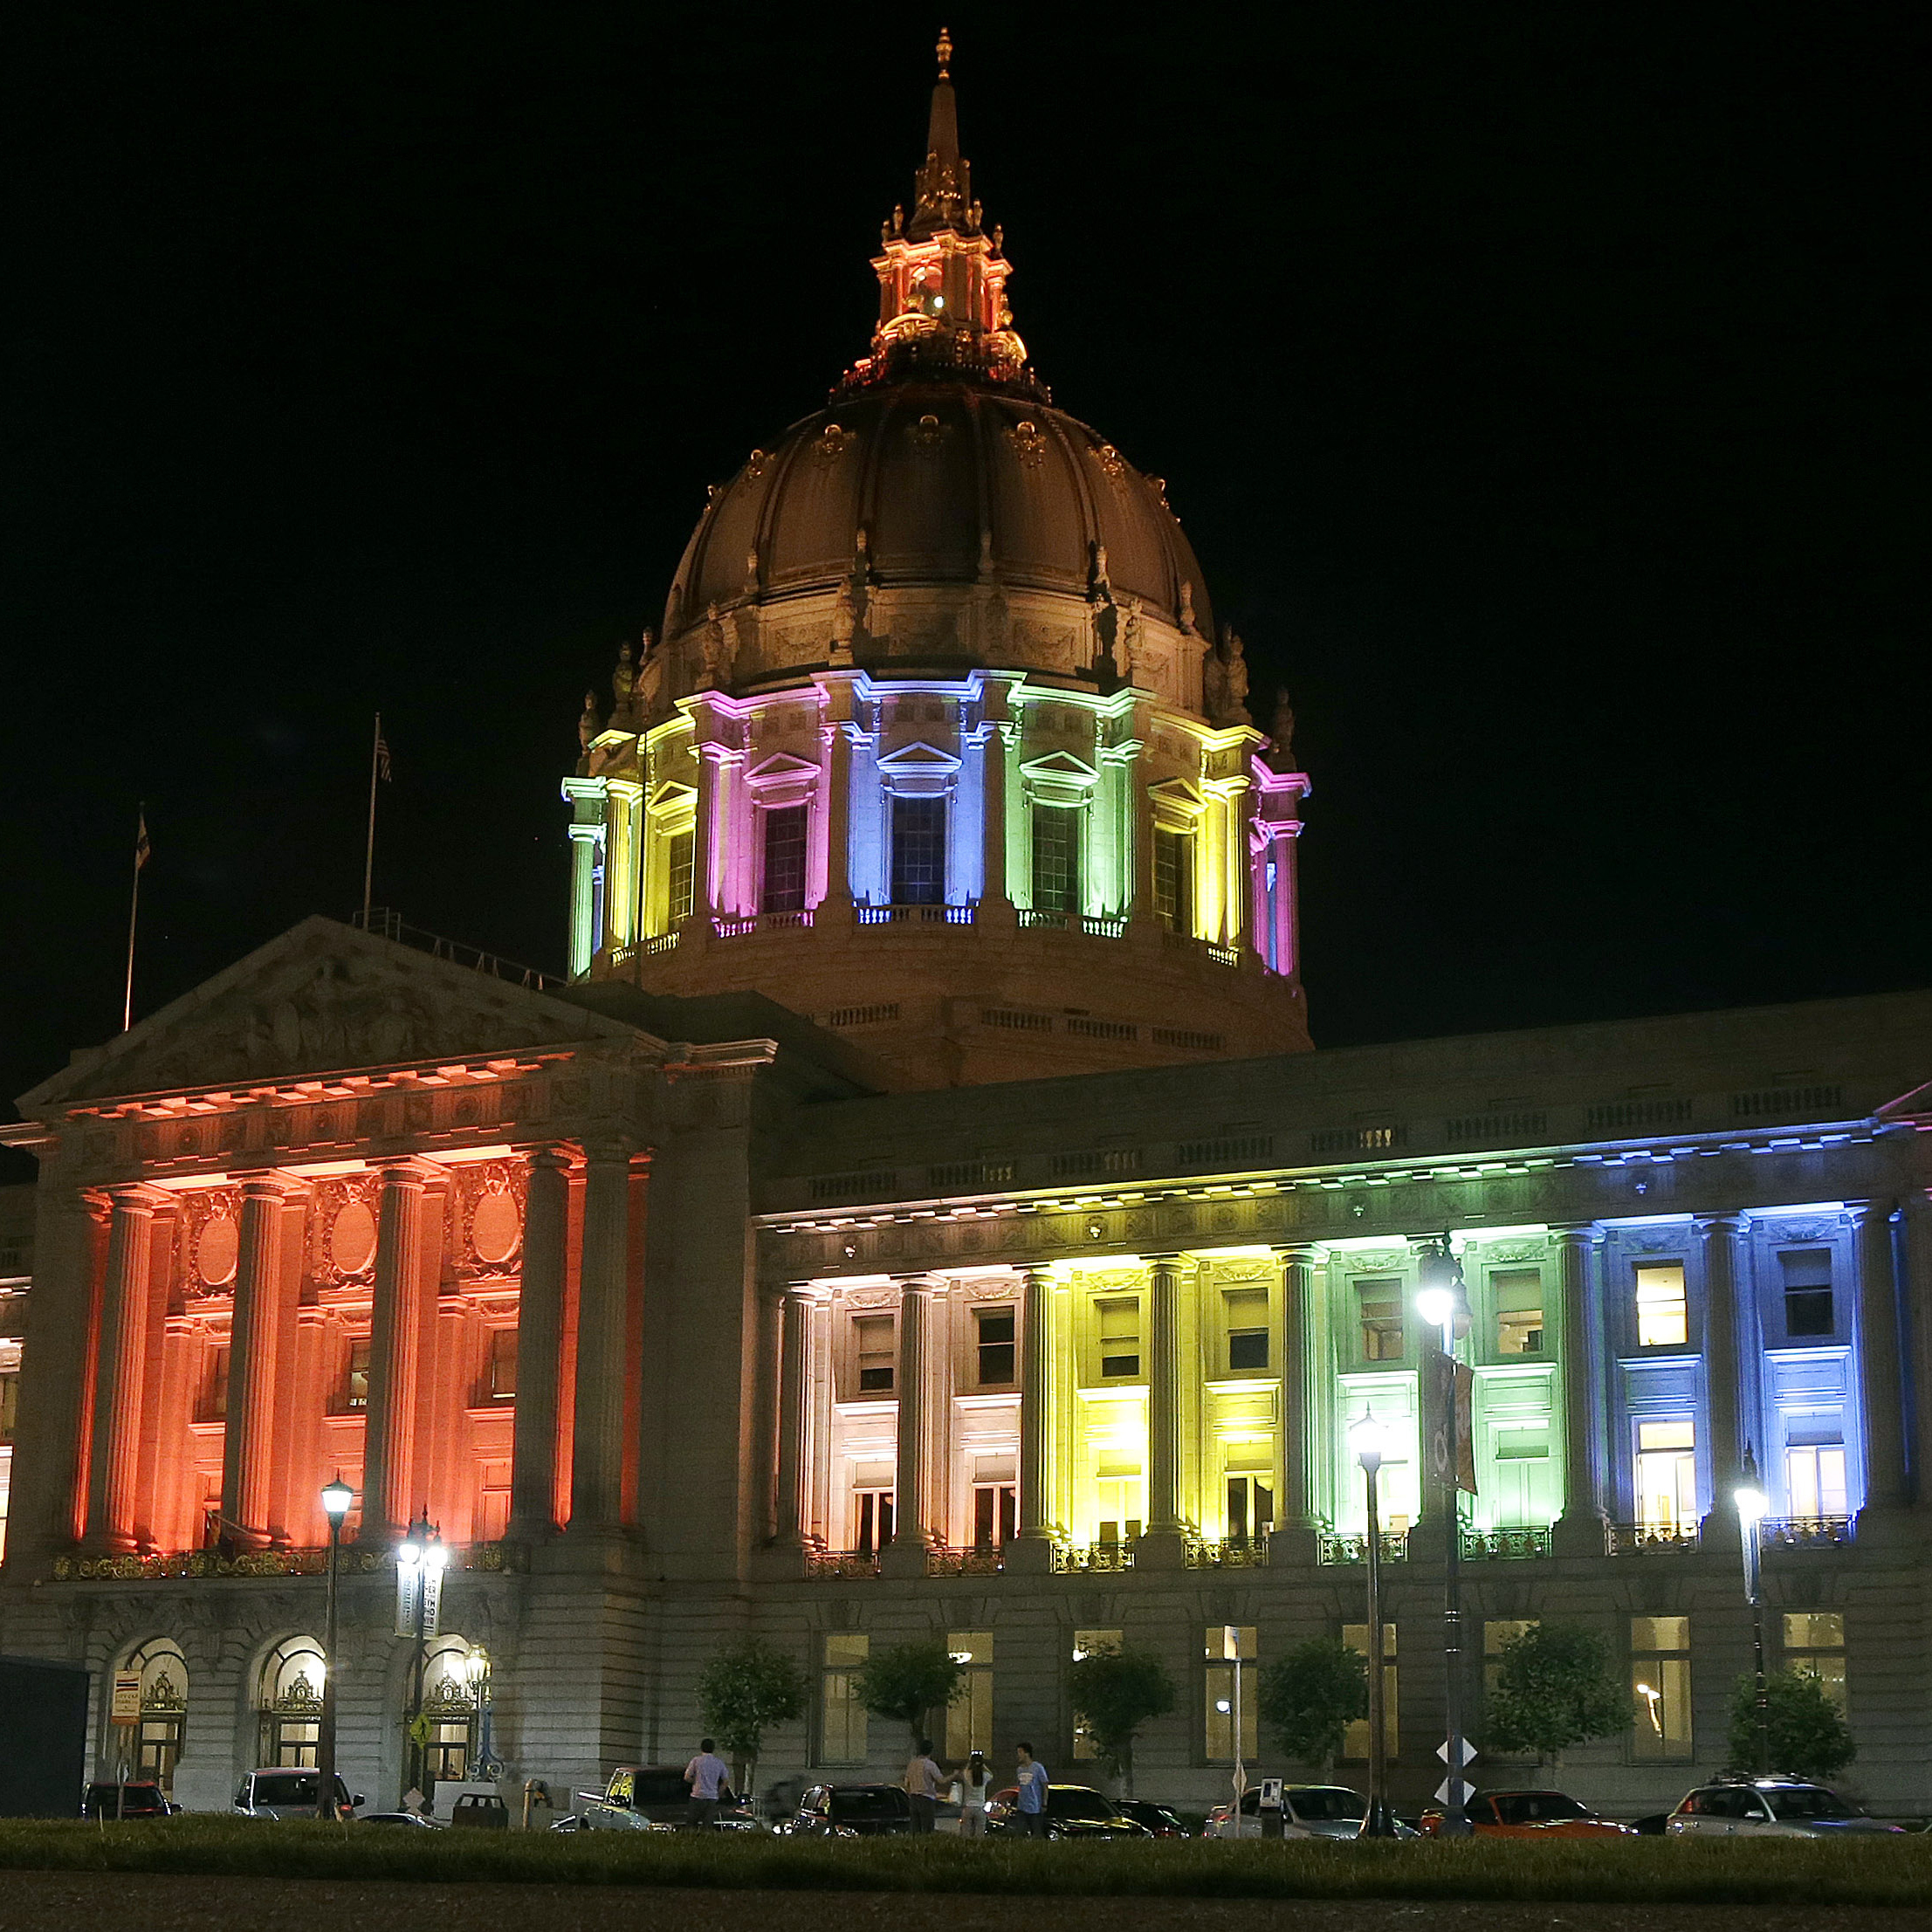 The U.S. 9th Circuit Court of Appeals has lifted a stay that had kept counties from issuing marriage licenses to gay couples. The court is in San Francisco, where City Hall currently sports rainbow-colored lights in honor of Gay Pride weekend.